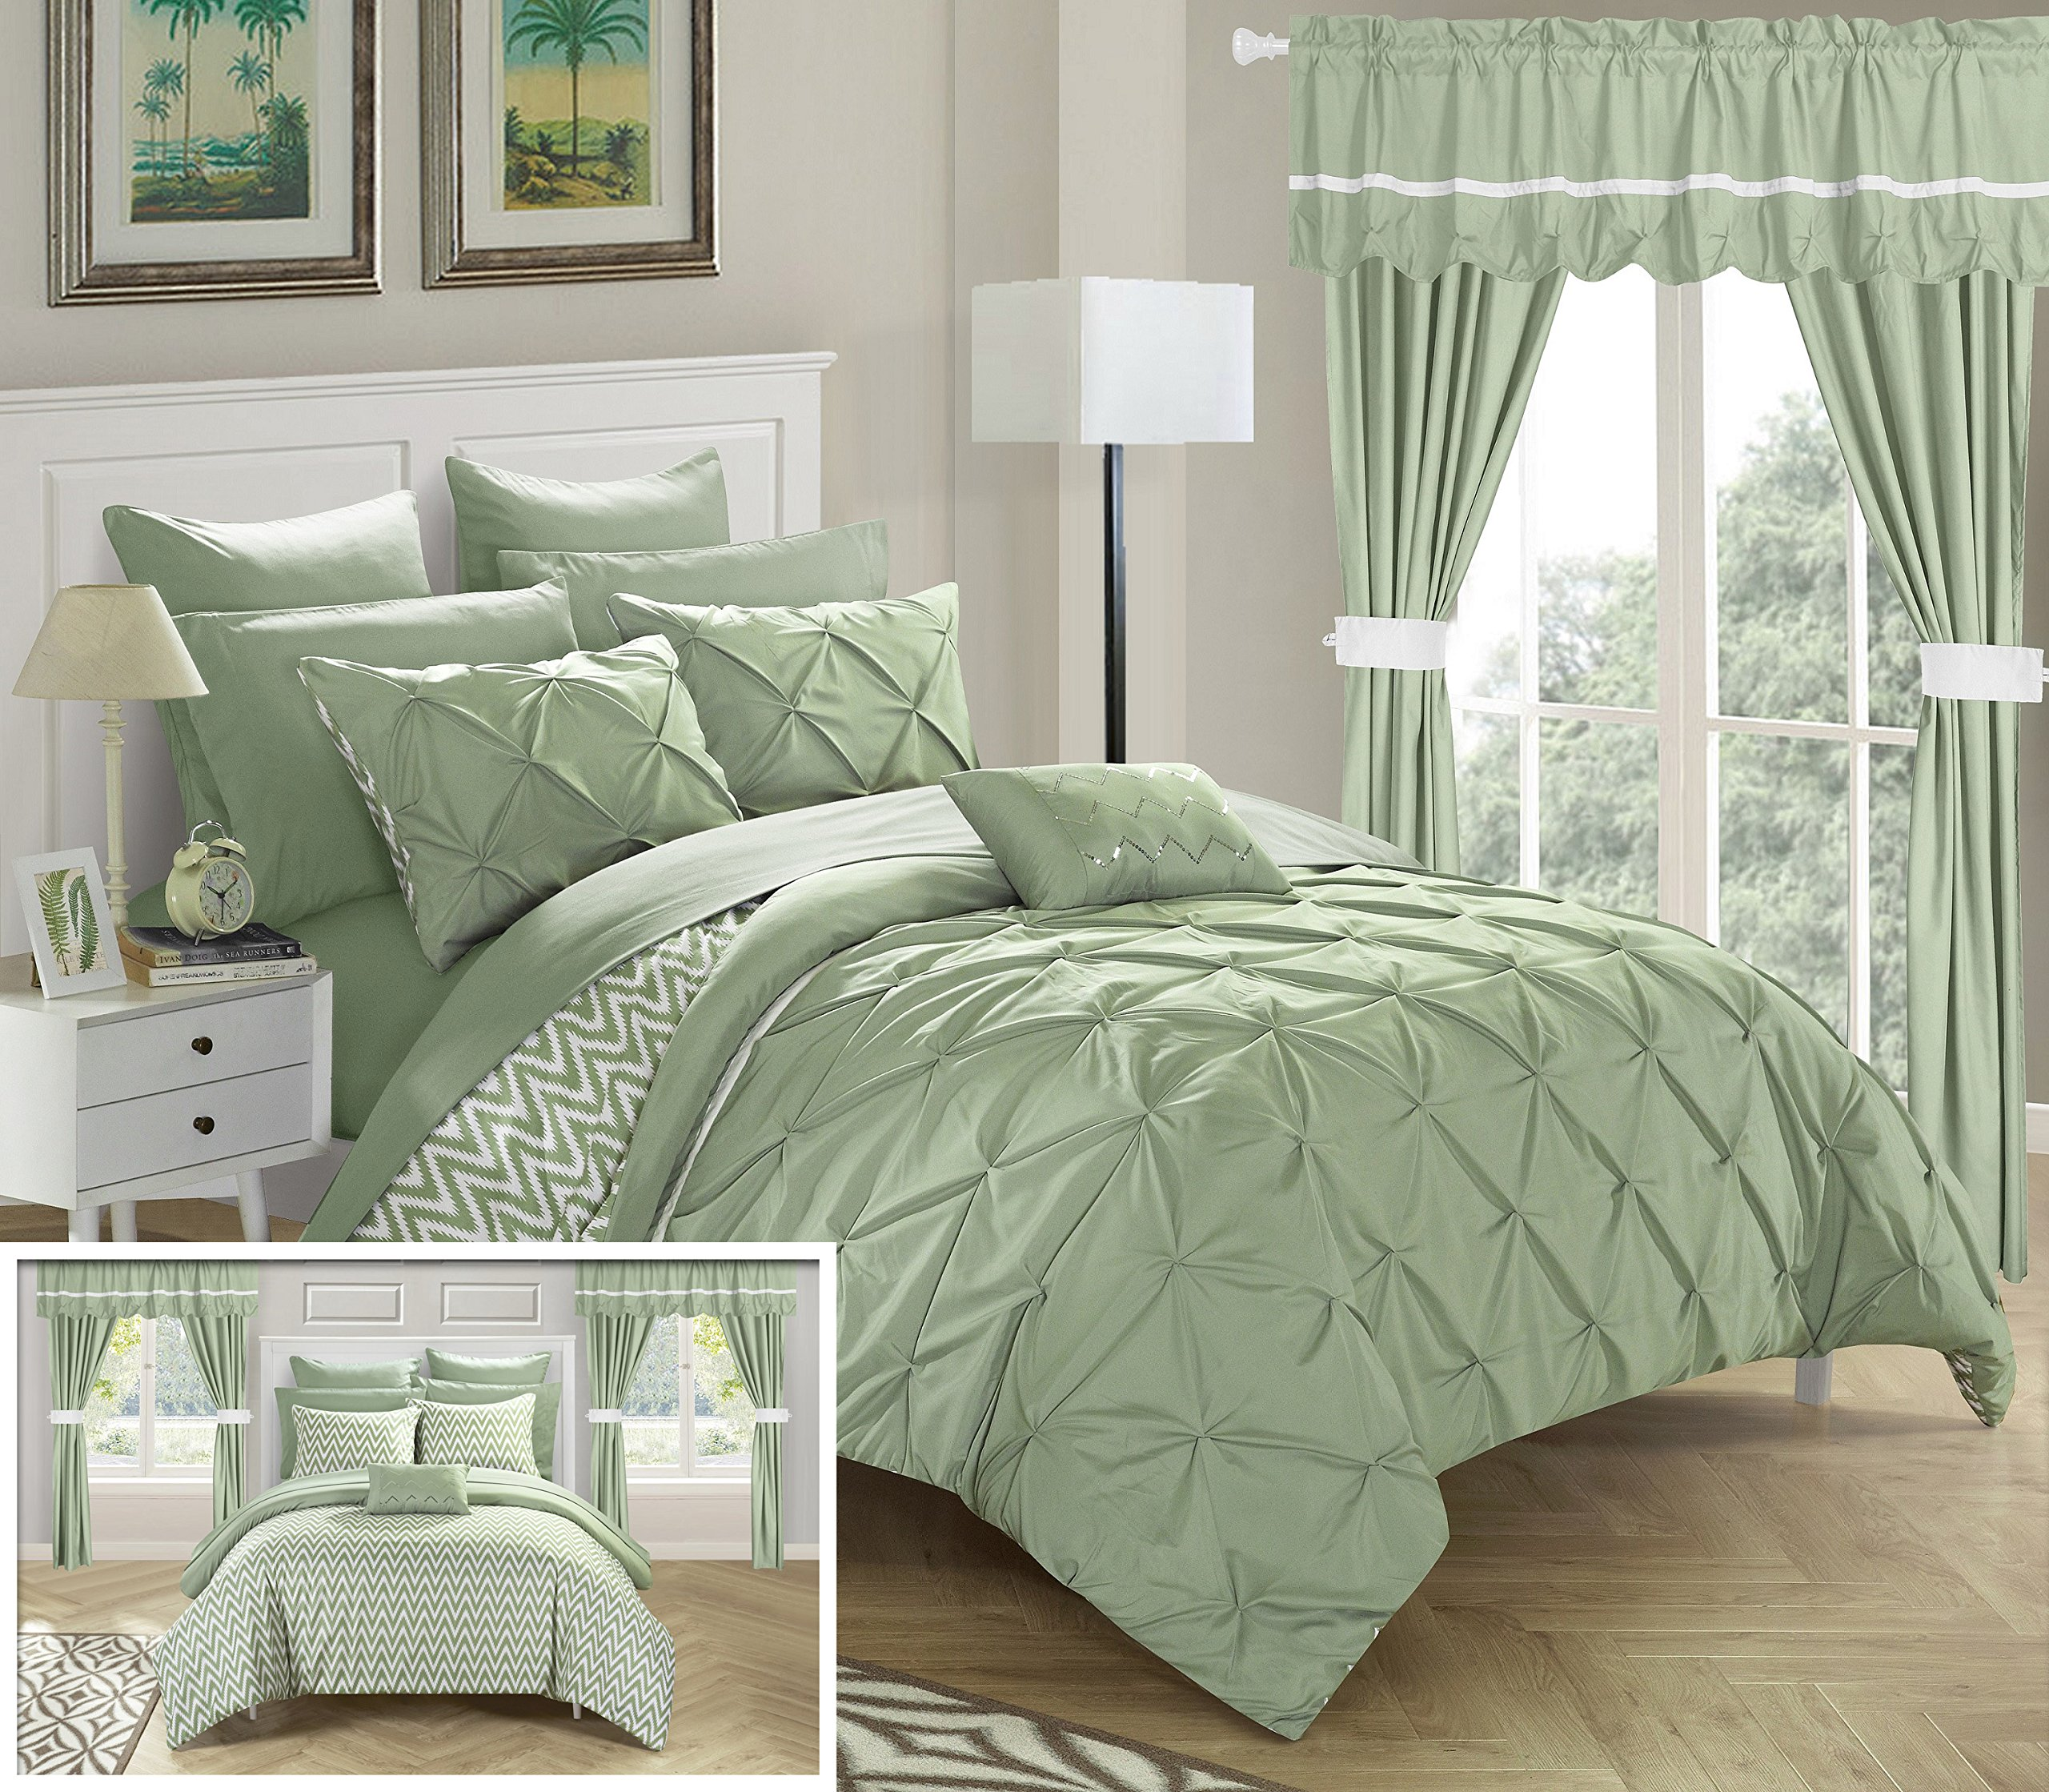 Chic Home CS0578-AN 20 Piece Jacksonville Complete Bed Room In A Bag Super Pinch Pleated Design Reversible Chevron Pattern Comforter Set, Sheets, Window Treatments And Decorative Pillows, King, Green by Chic Home